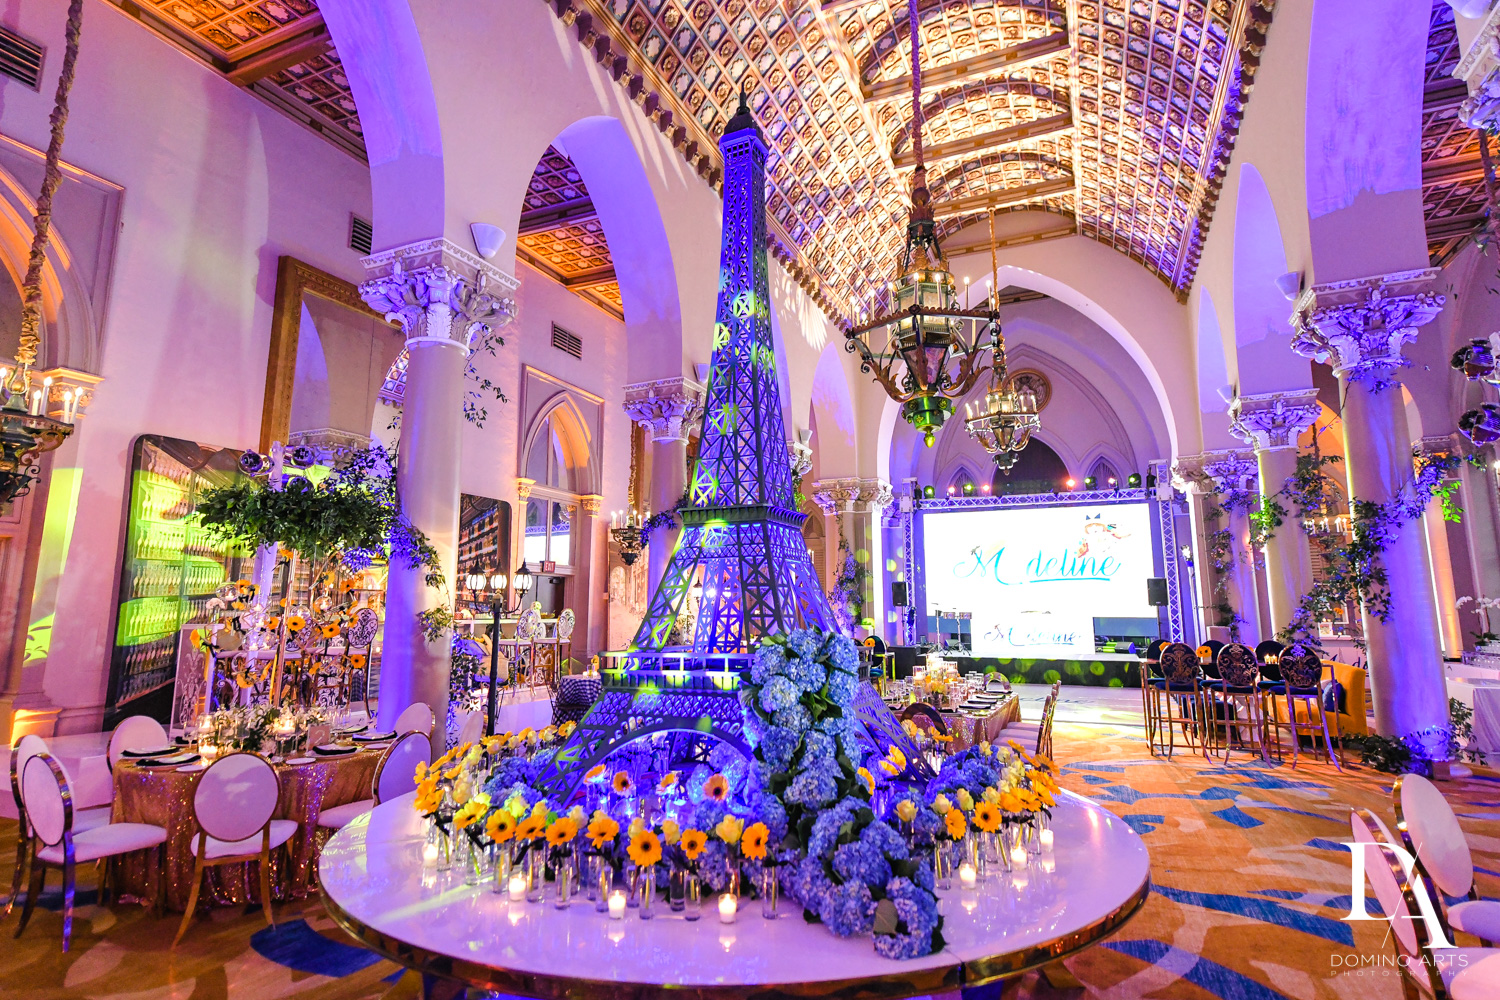 eiffel tower at Madeline in Paris theme Bat Mitzvah at Boca Raton Resort and Club by Domino Arts Photography